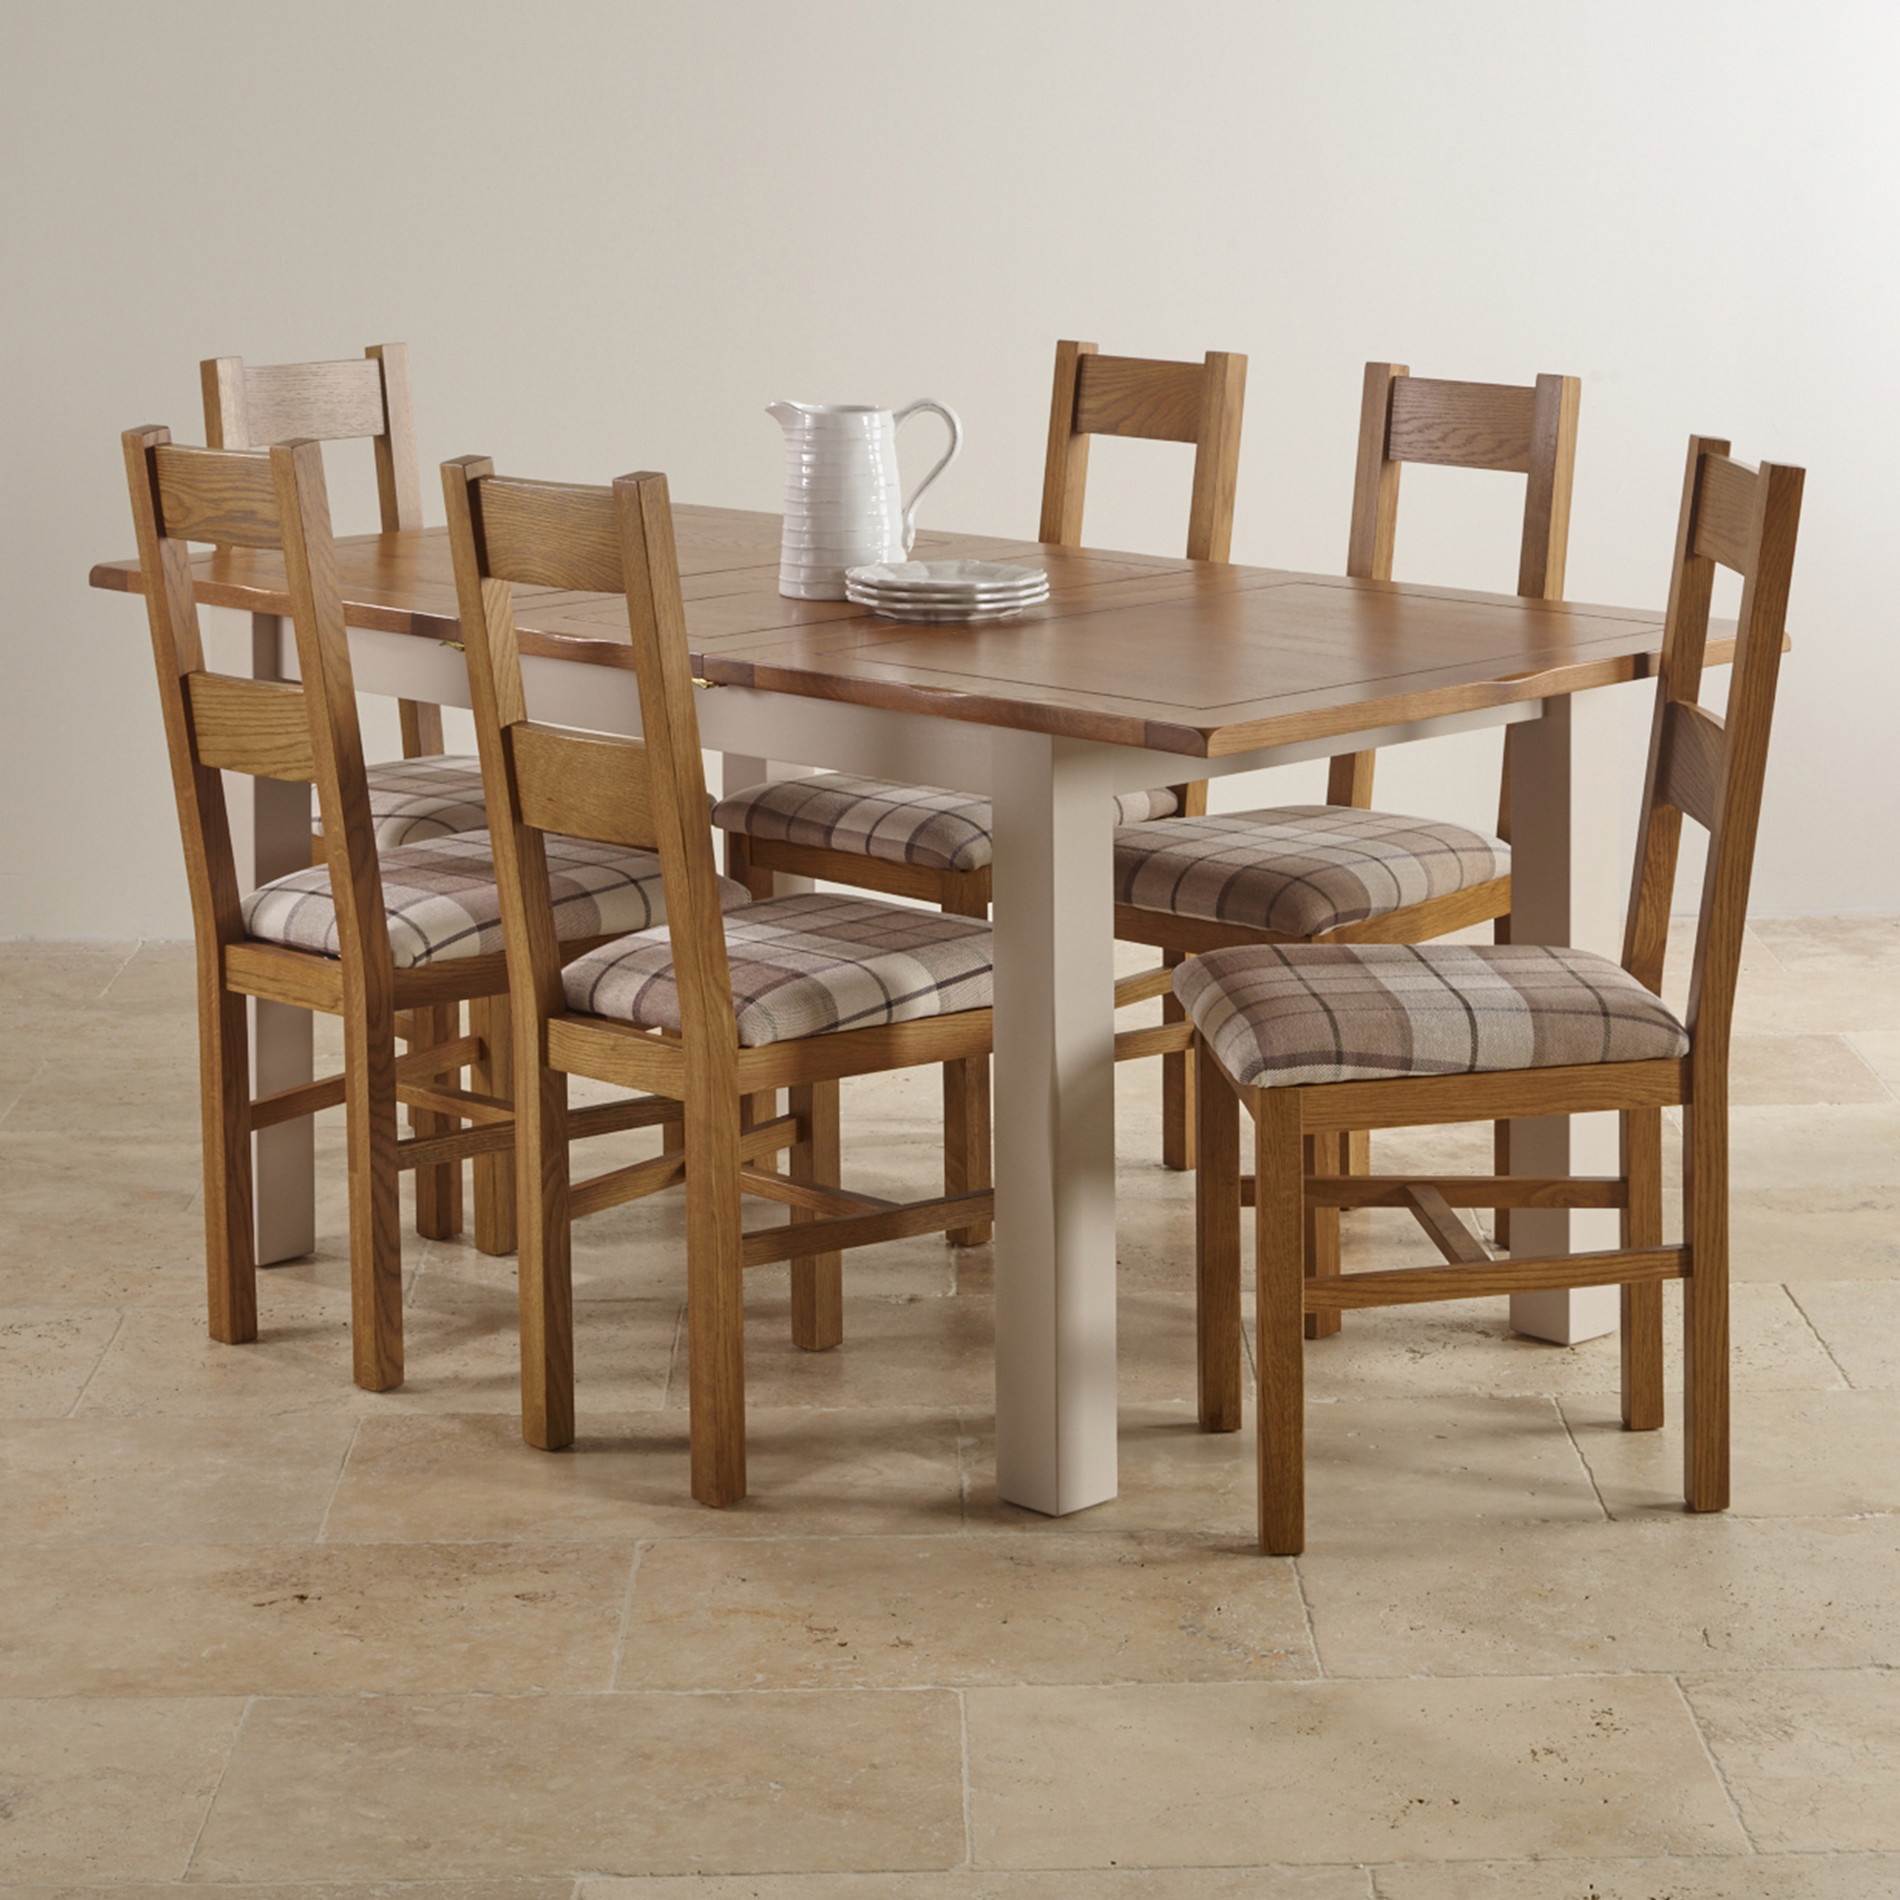 Kemble Extending Dining Set in Painted Oak Table 6 Chairs : kemble rustic solid oak and painted 4ft 7 x 3ft extending dining table with 6 farmhouse chairs 563b8a8ec834f from www.oakfurnitureland.co.uk size 1900 x 1900 jpeg 590kB